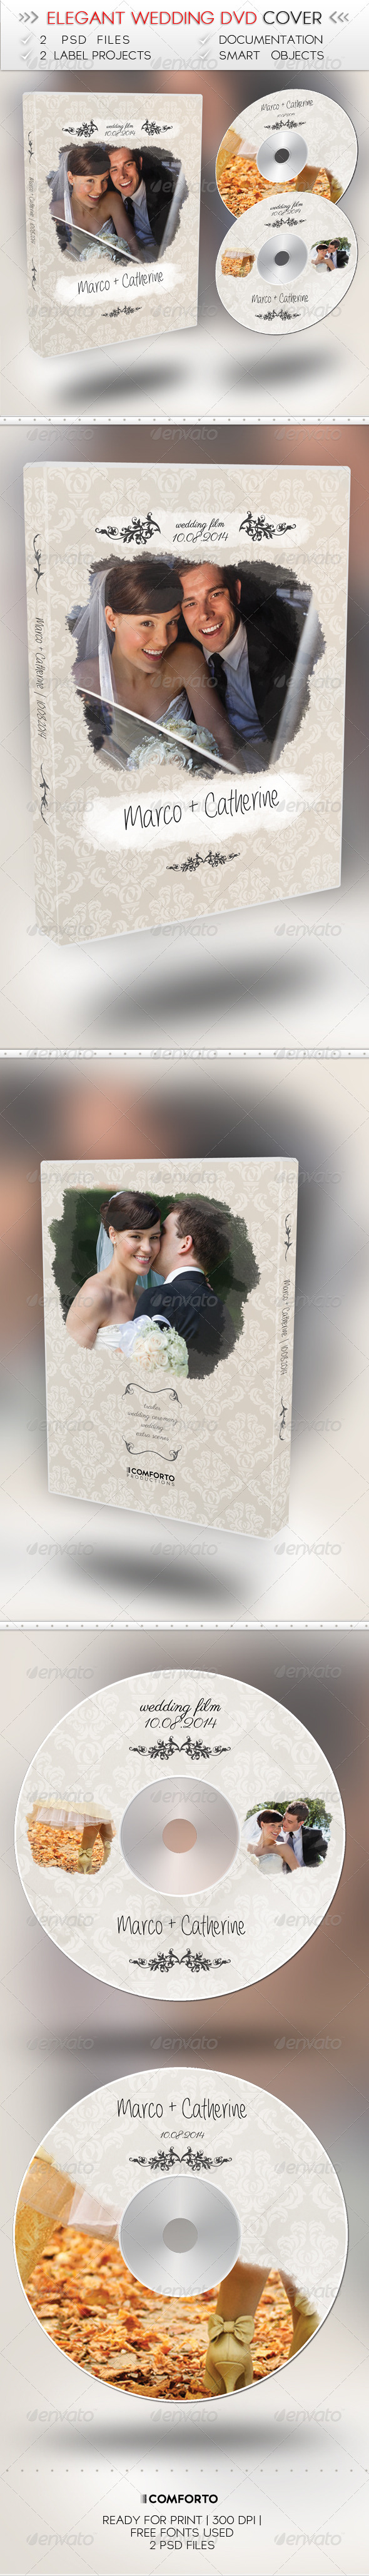 GraphicRiver Elegant Wedding DVD Cover 7332419